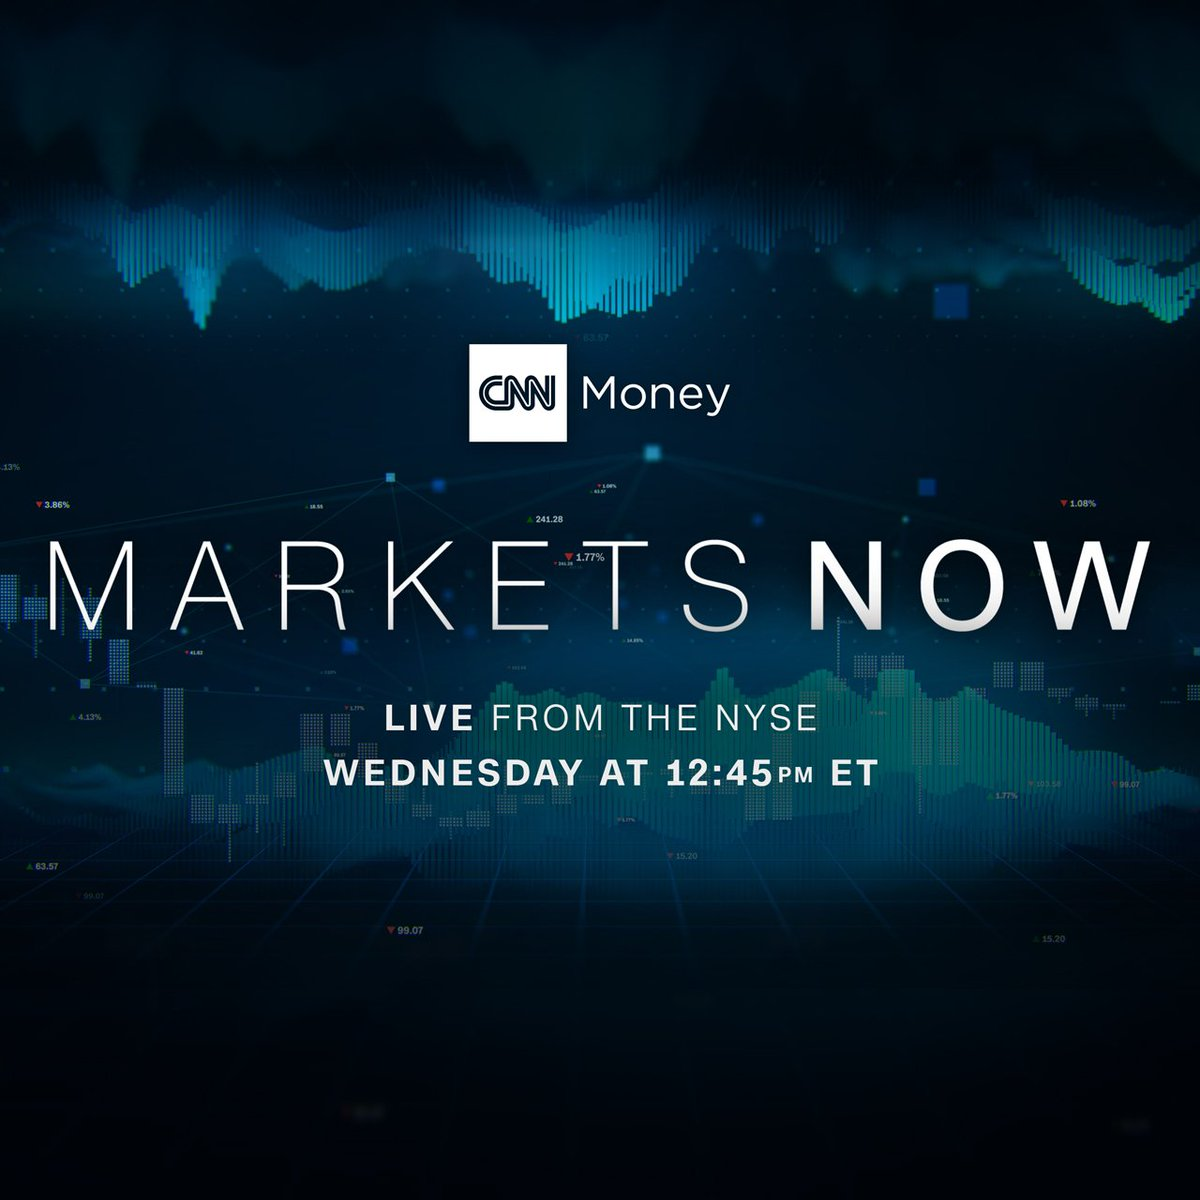 Cnnmoney Has A New Show Tune In For Markets Now Live From